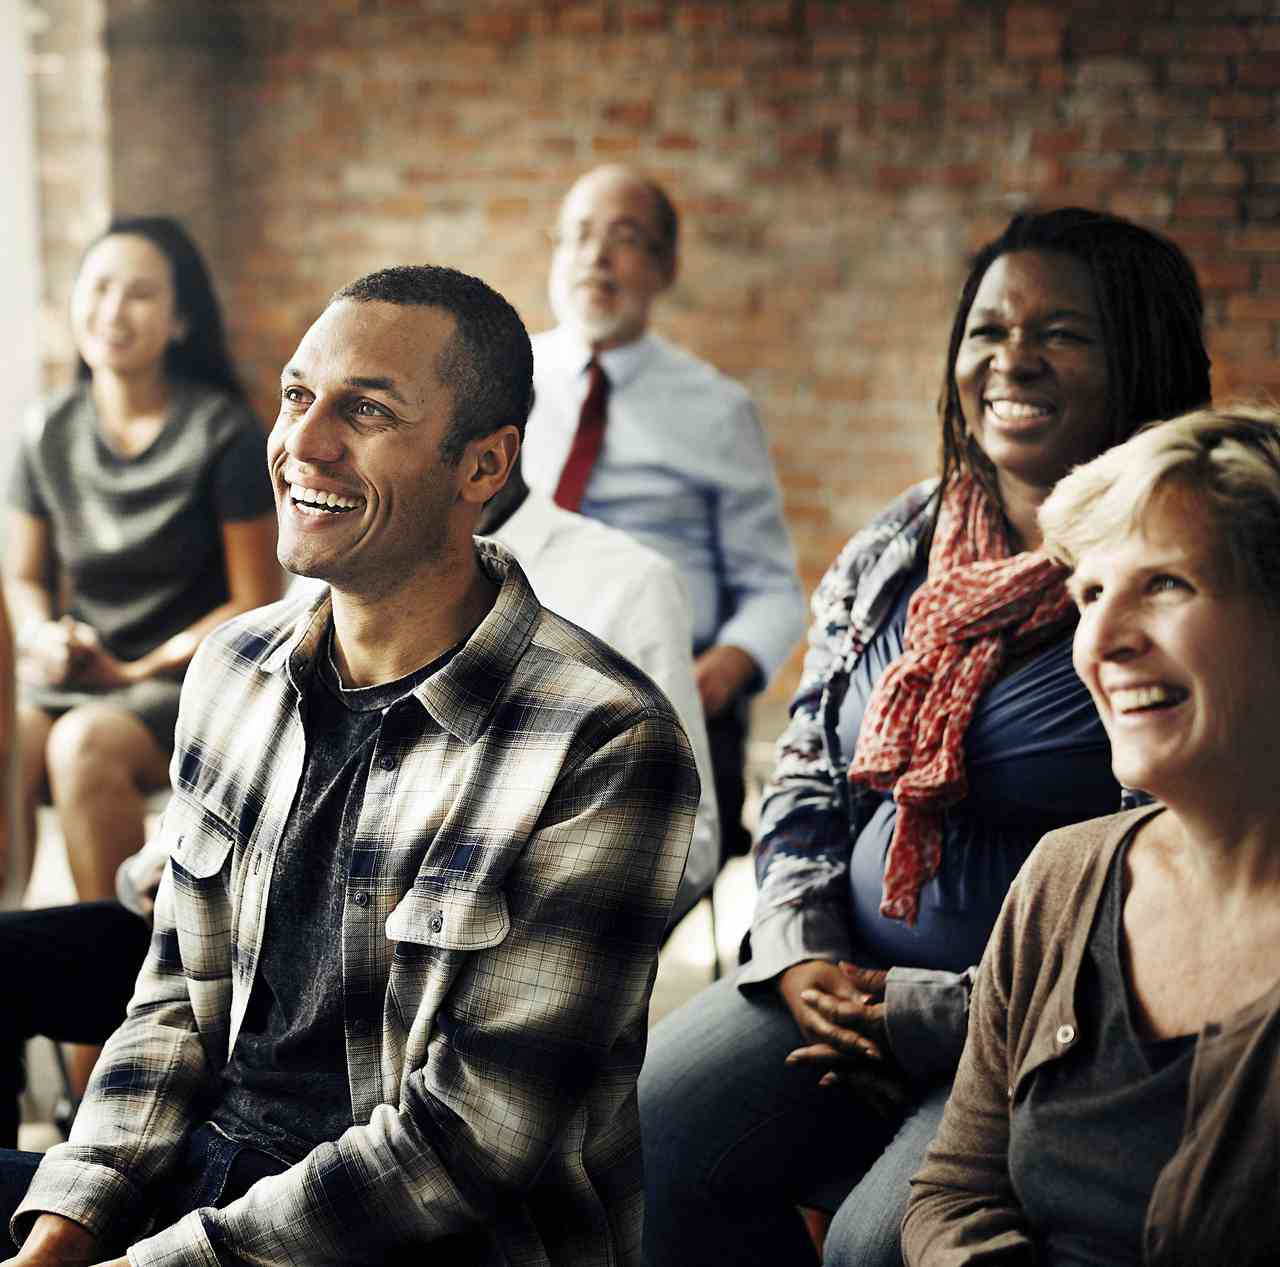 Group of people listening to and smiling at an unseen speaker.